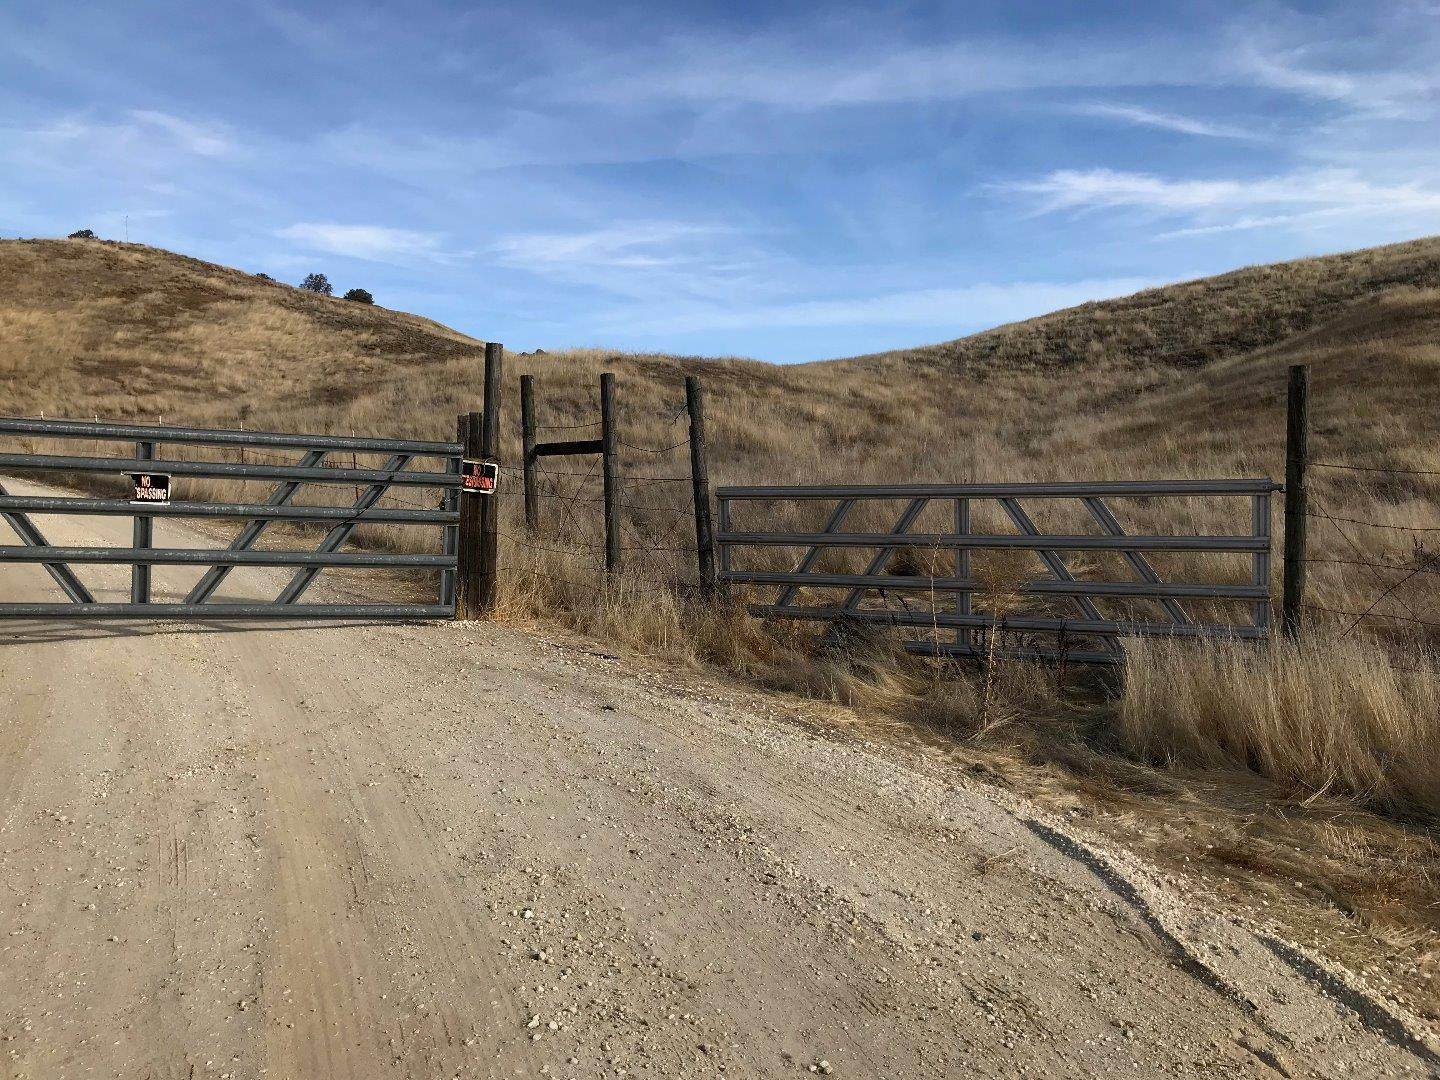 Land for Sale at Lot 83 Panoche Ranch Lot 83 Panoche Ranch Paicines, California 95043 United States